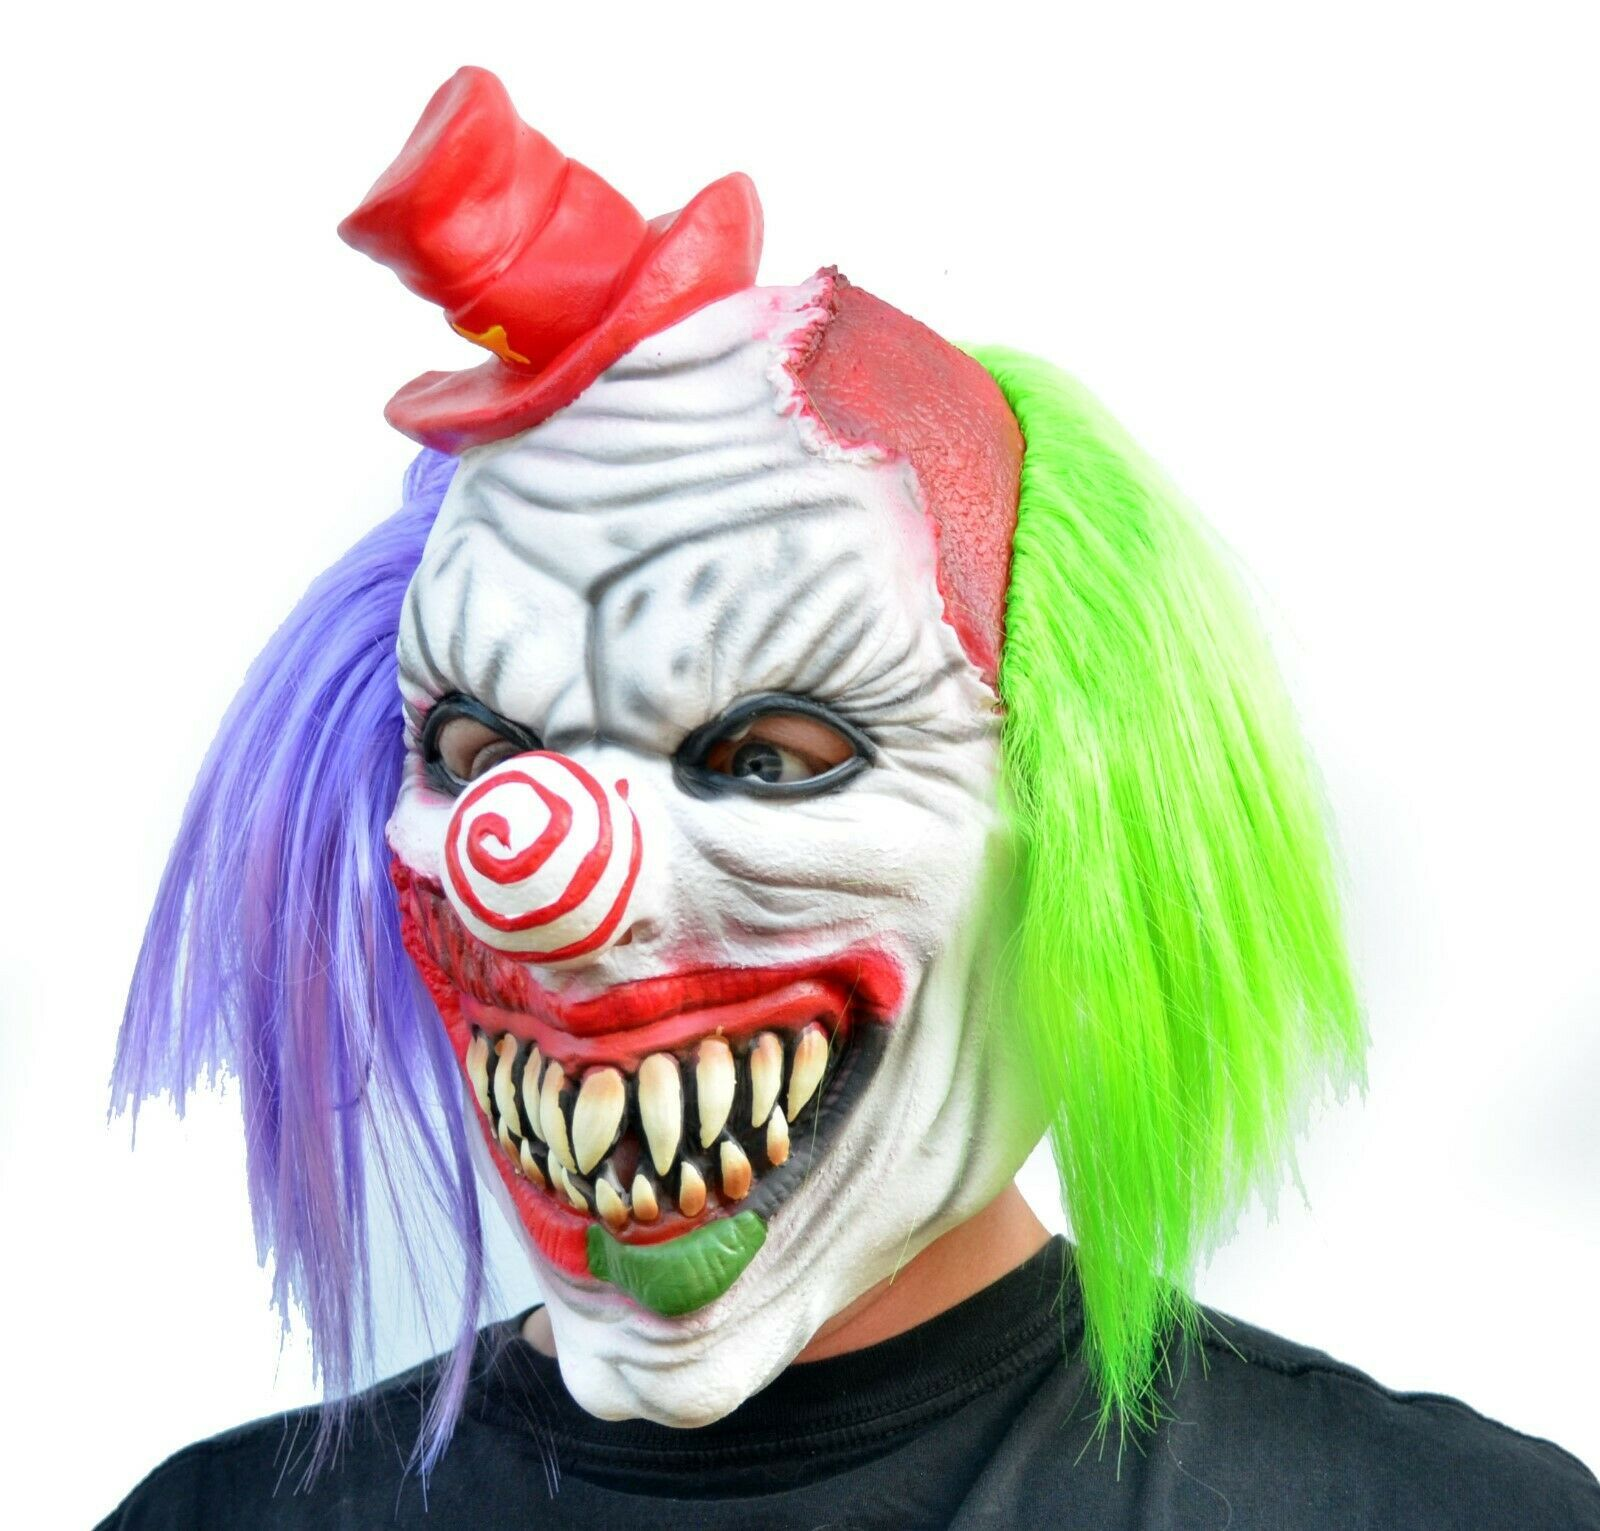 Evil Halloween Clown Mask Costume Party Mask with Hair Killer Psycho the Clown image 3